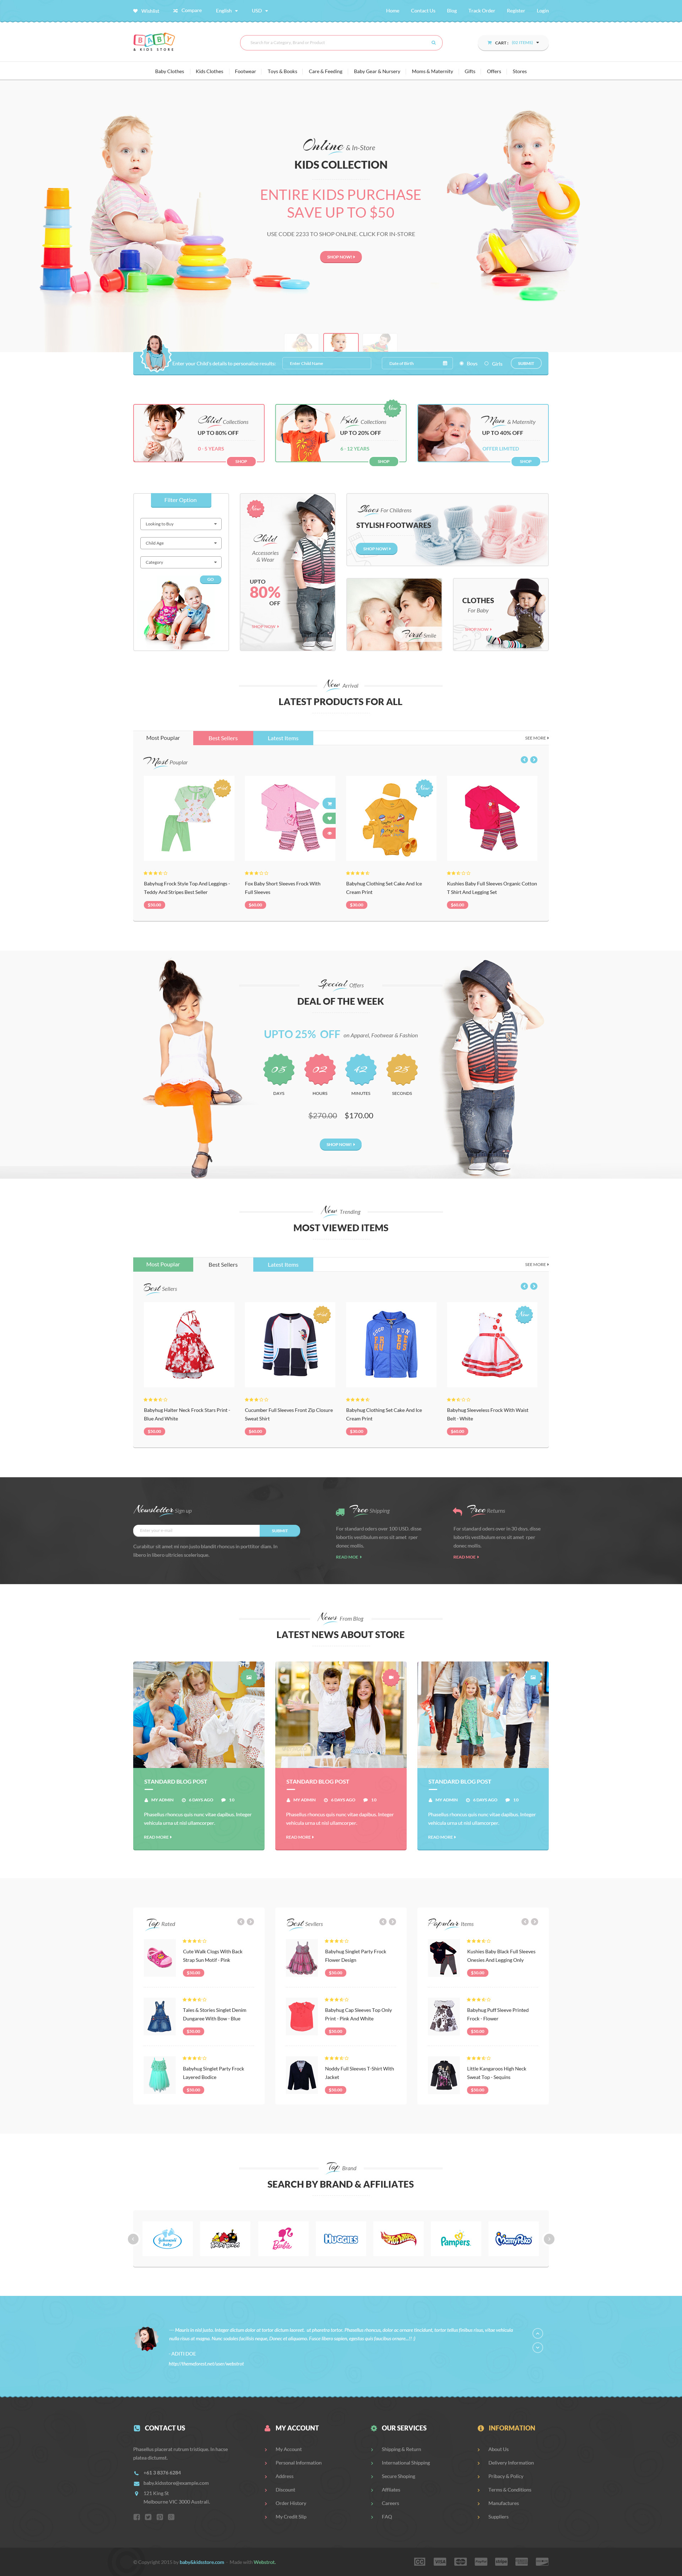 Cute 1 Year Experience Resume Format For Java Developer Thin 100th Day Hat Template Clean 12 Team Schedule Template 15 Year Old Resume Youthful 1st Job Resume Objective Dark2014 Yearly Calendar Template Baby \u0026 Kids Store ECommerce PSD Template By Webstrot | ThemeForest